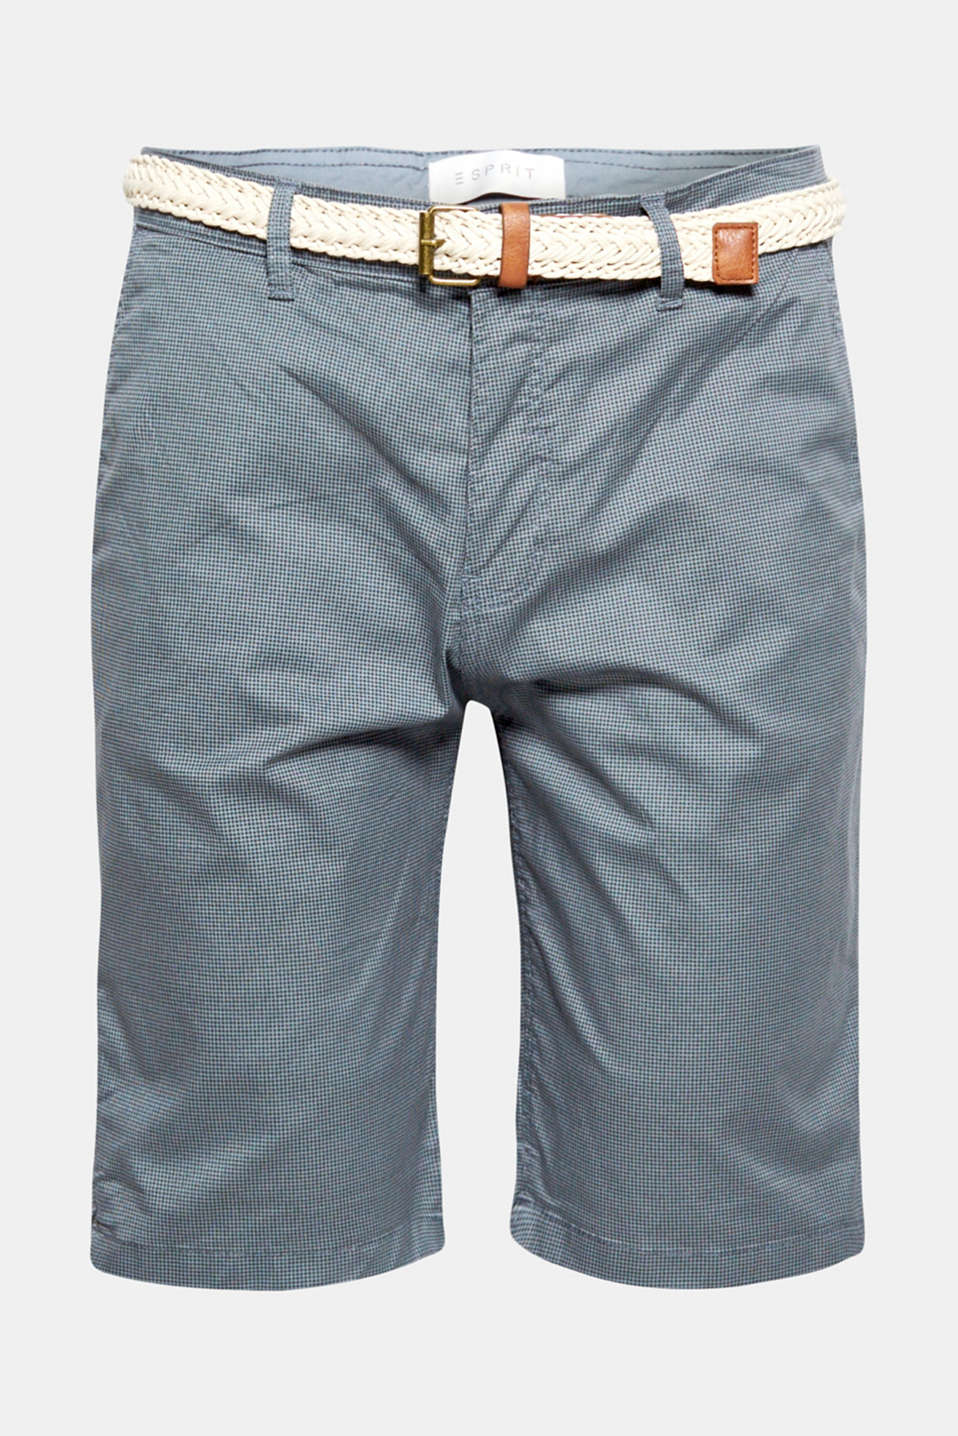 Esprit - Cotton shorts with organic cotton